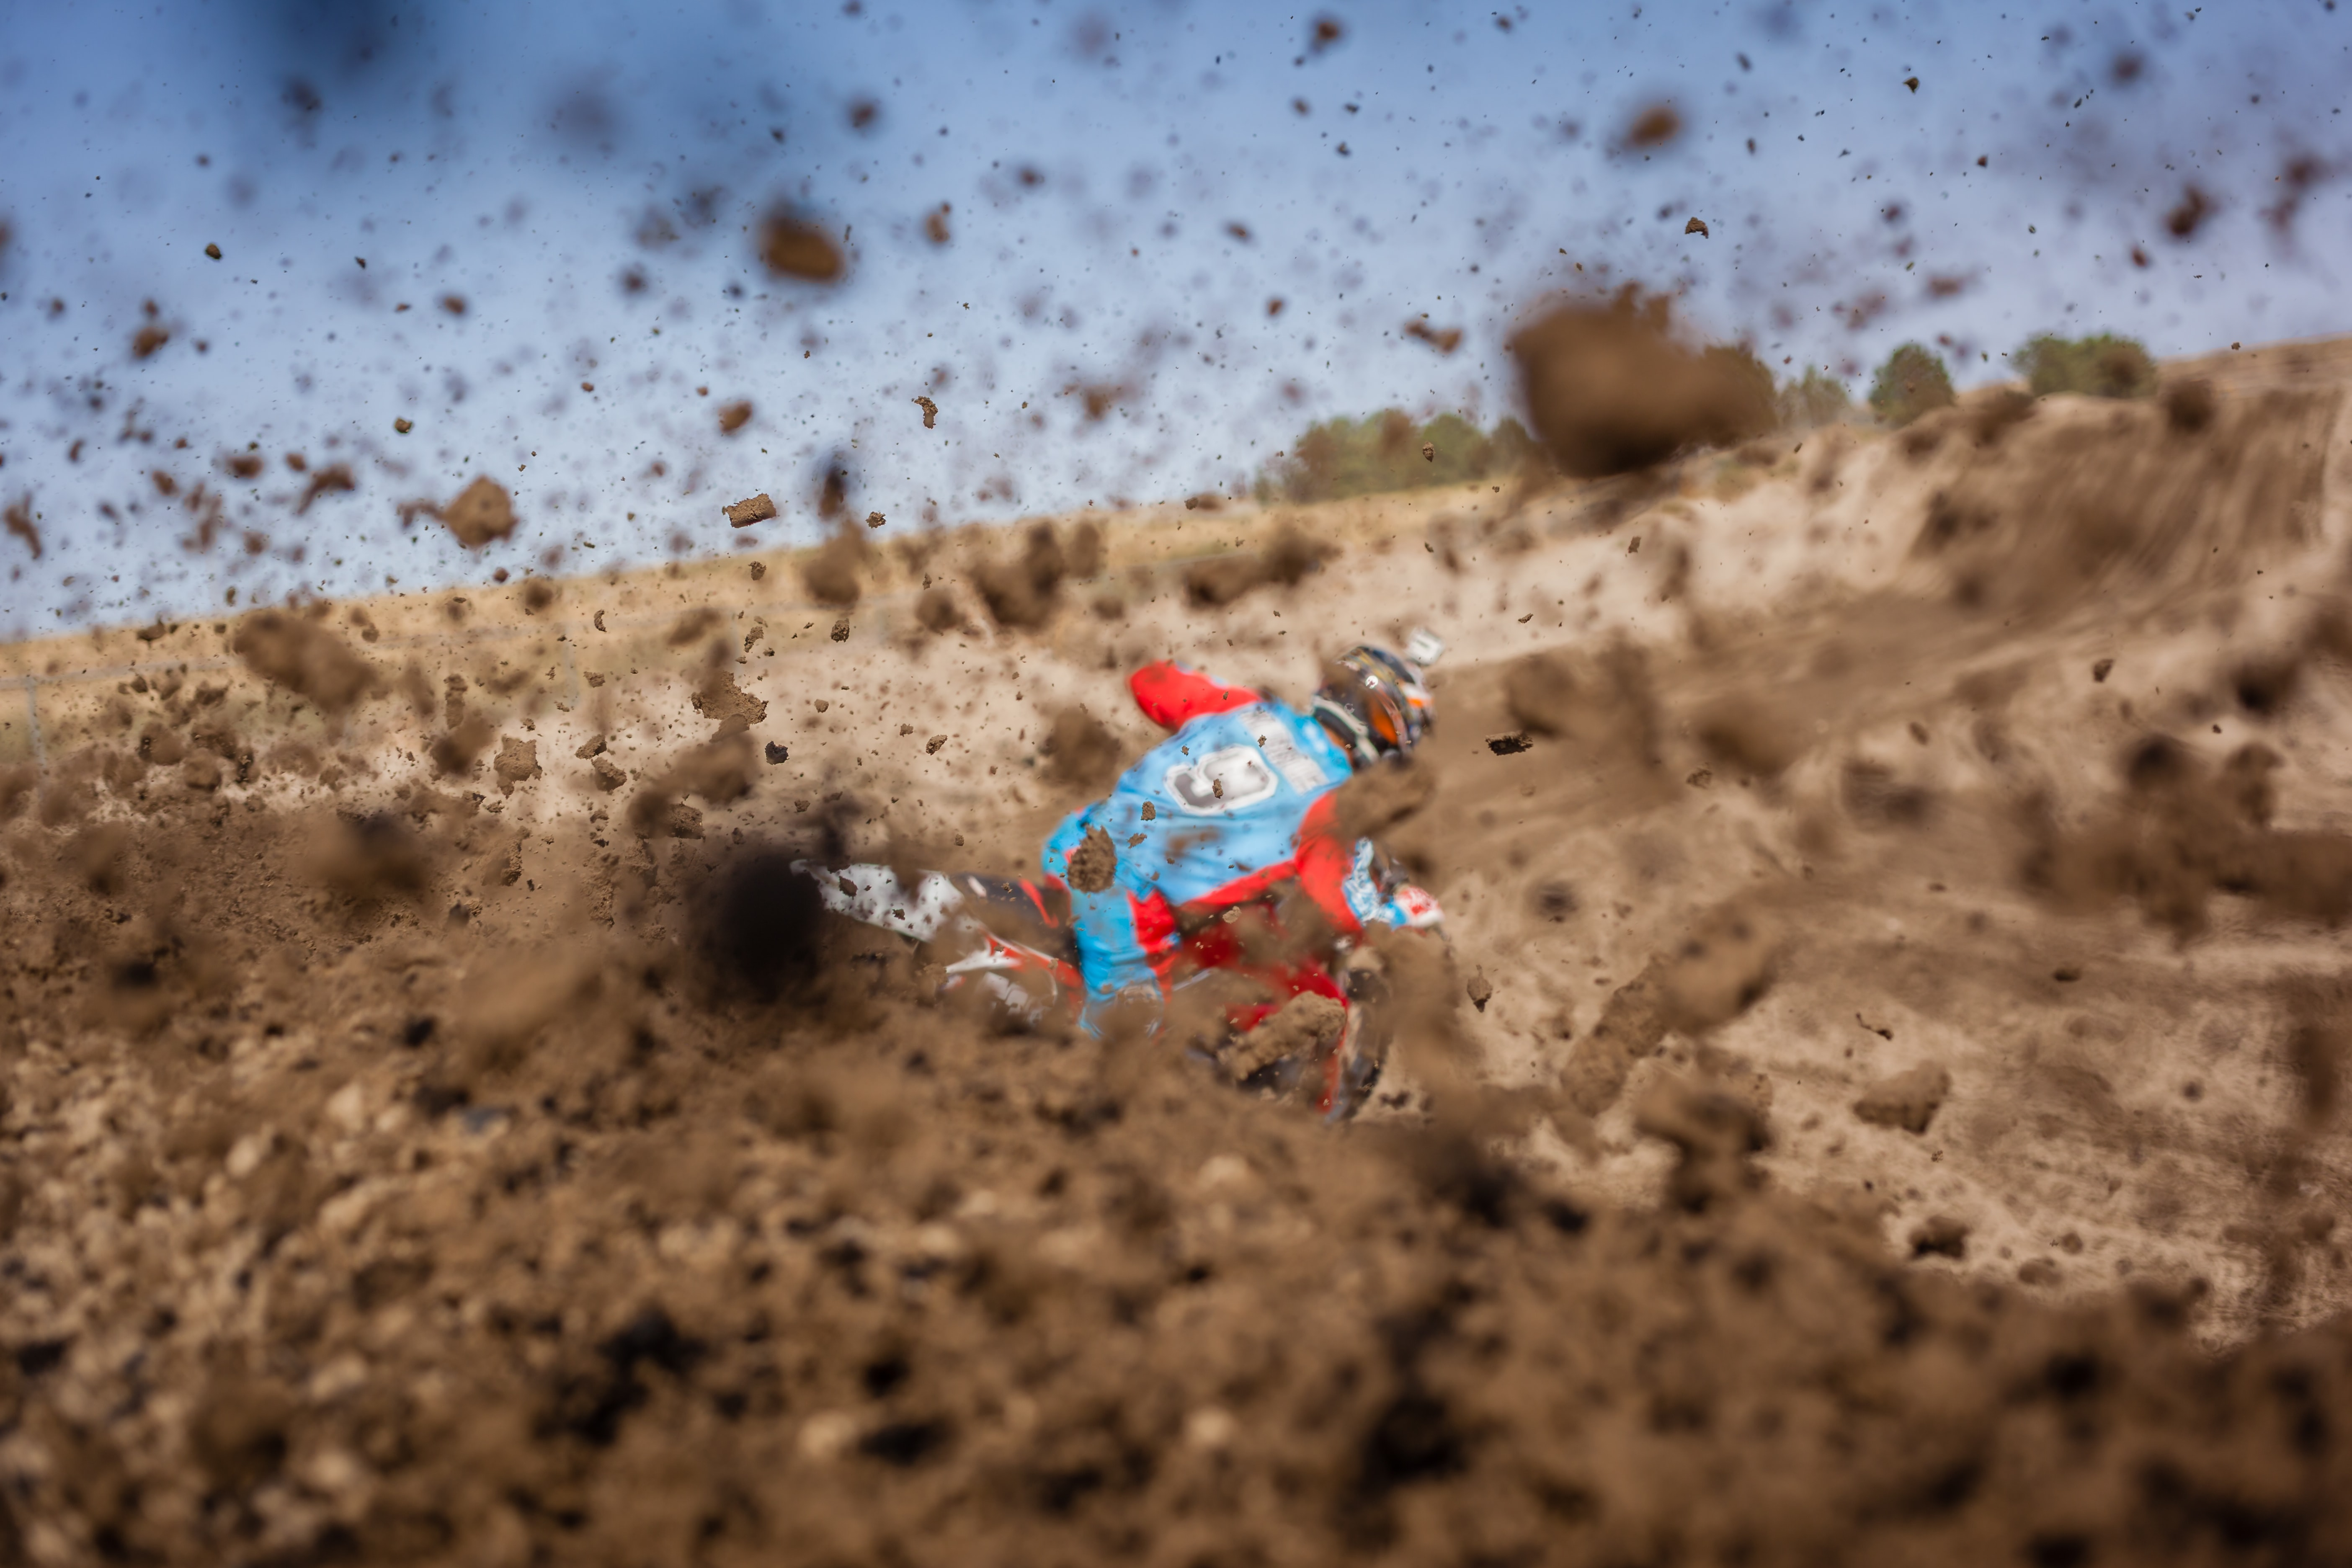 A motorcyclist riding a motorcycle and throwing up dirt and mud with the tires on a track